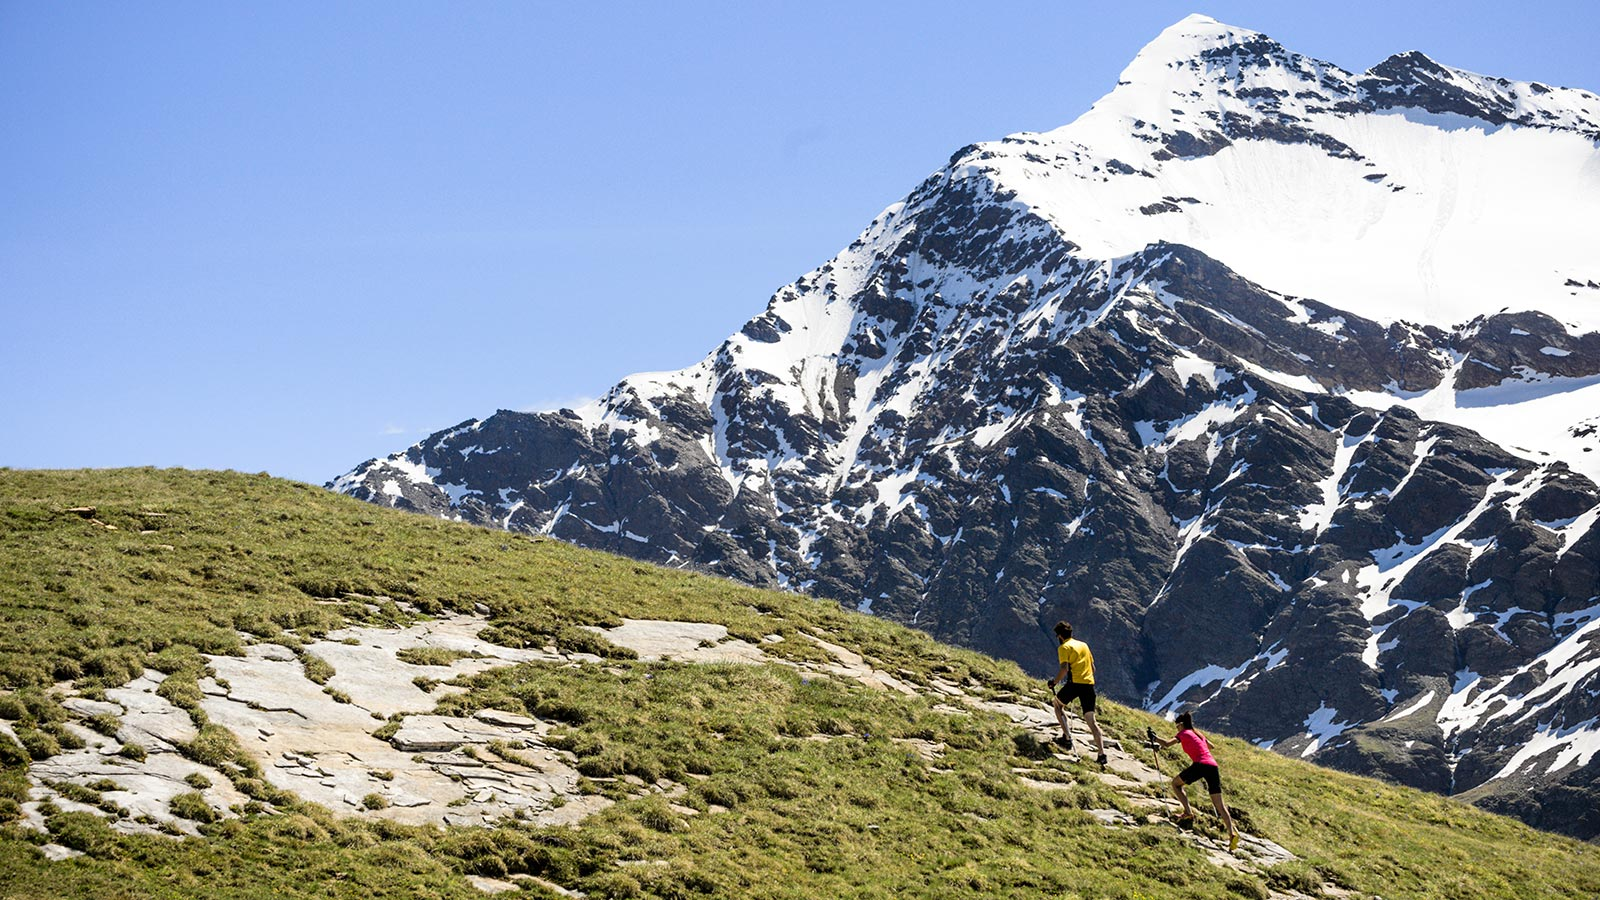 Man and woman hiking in the province of Sondrio